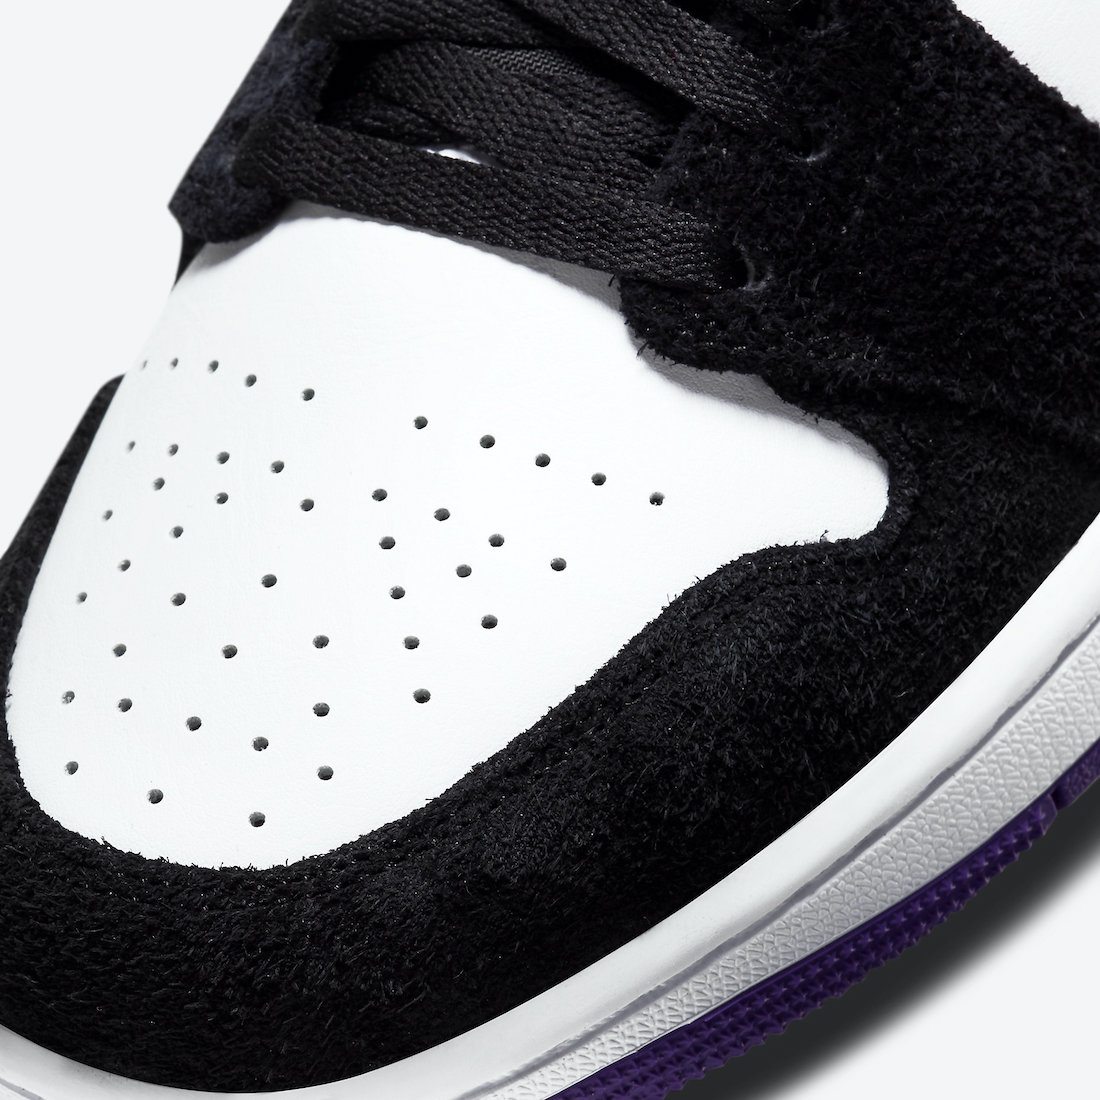 Air-Jordan-1-Mid-SE-Purple-852542-105-Release-Date-6